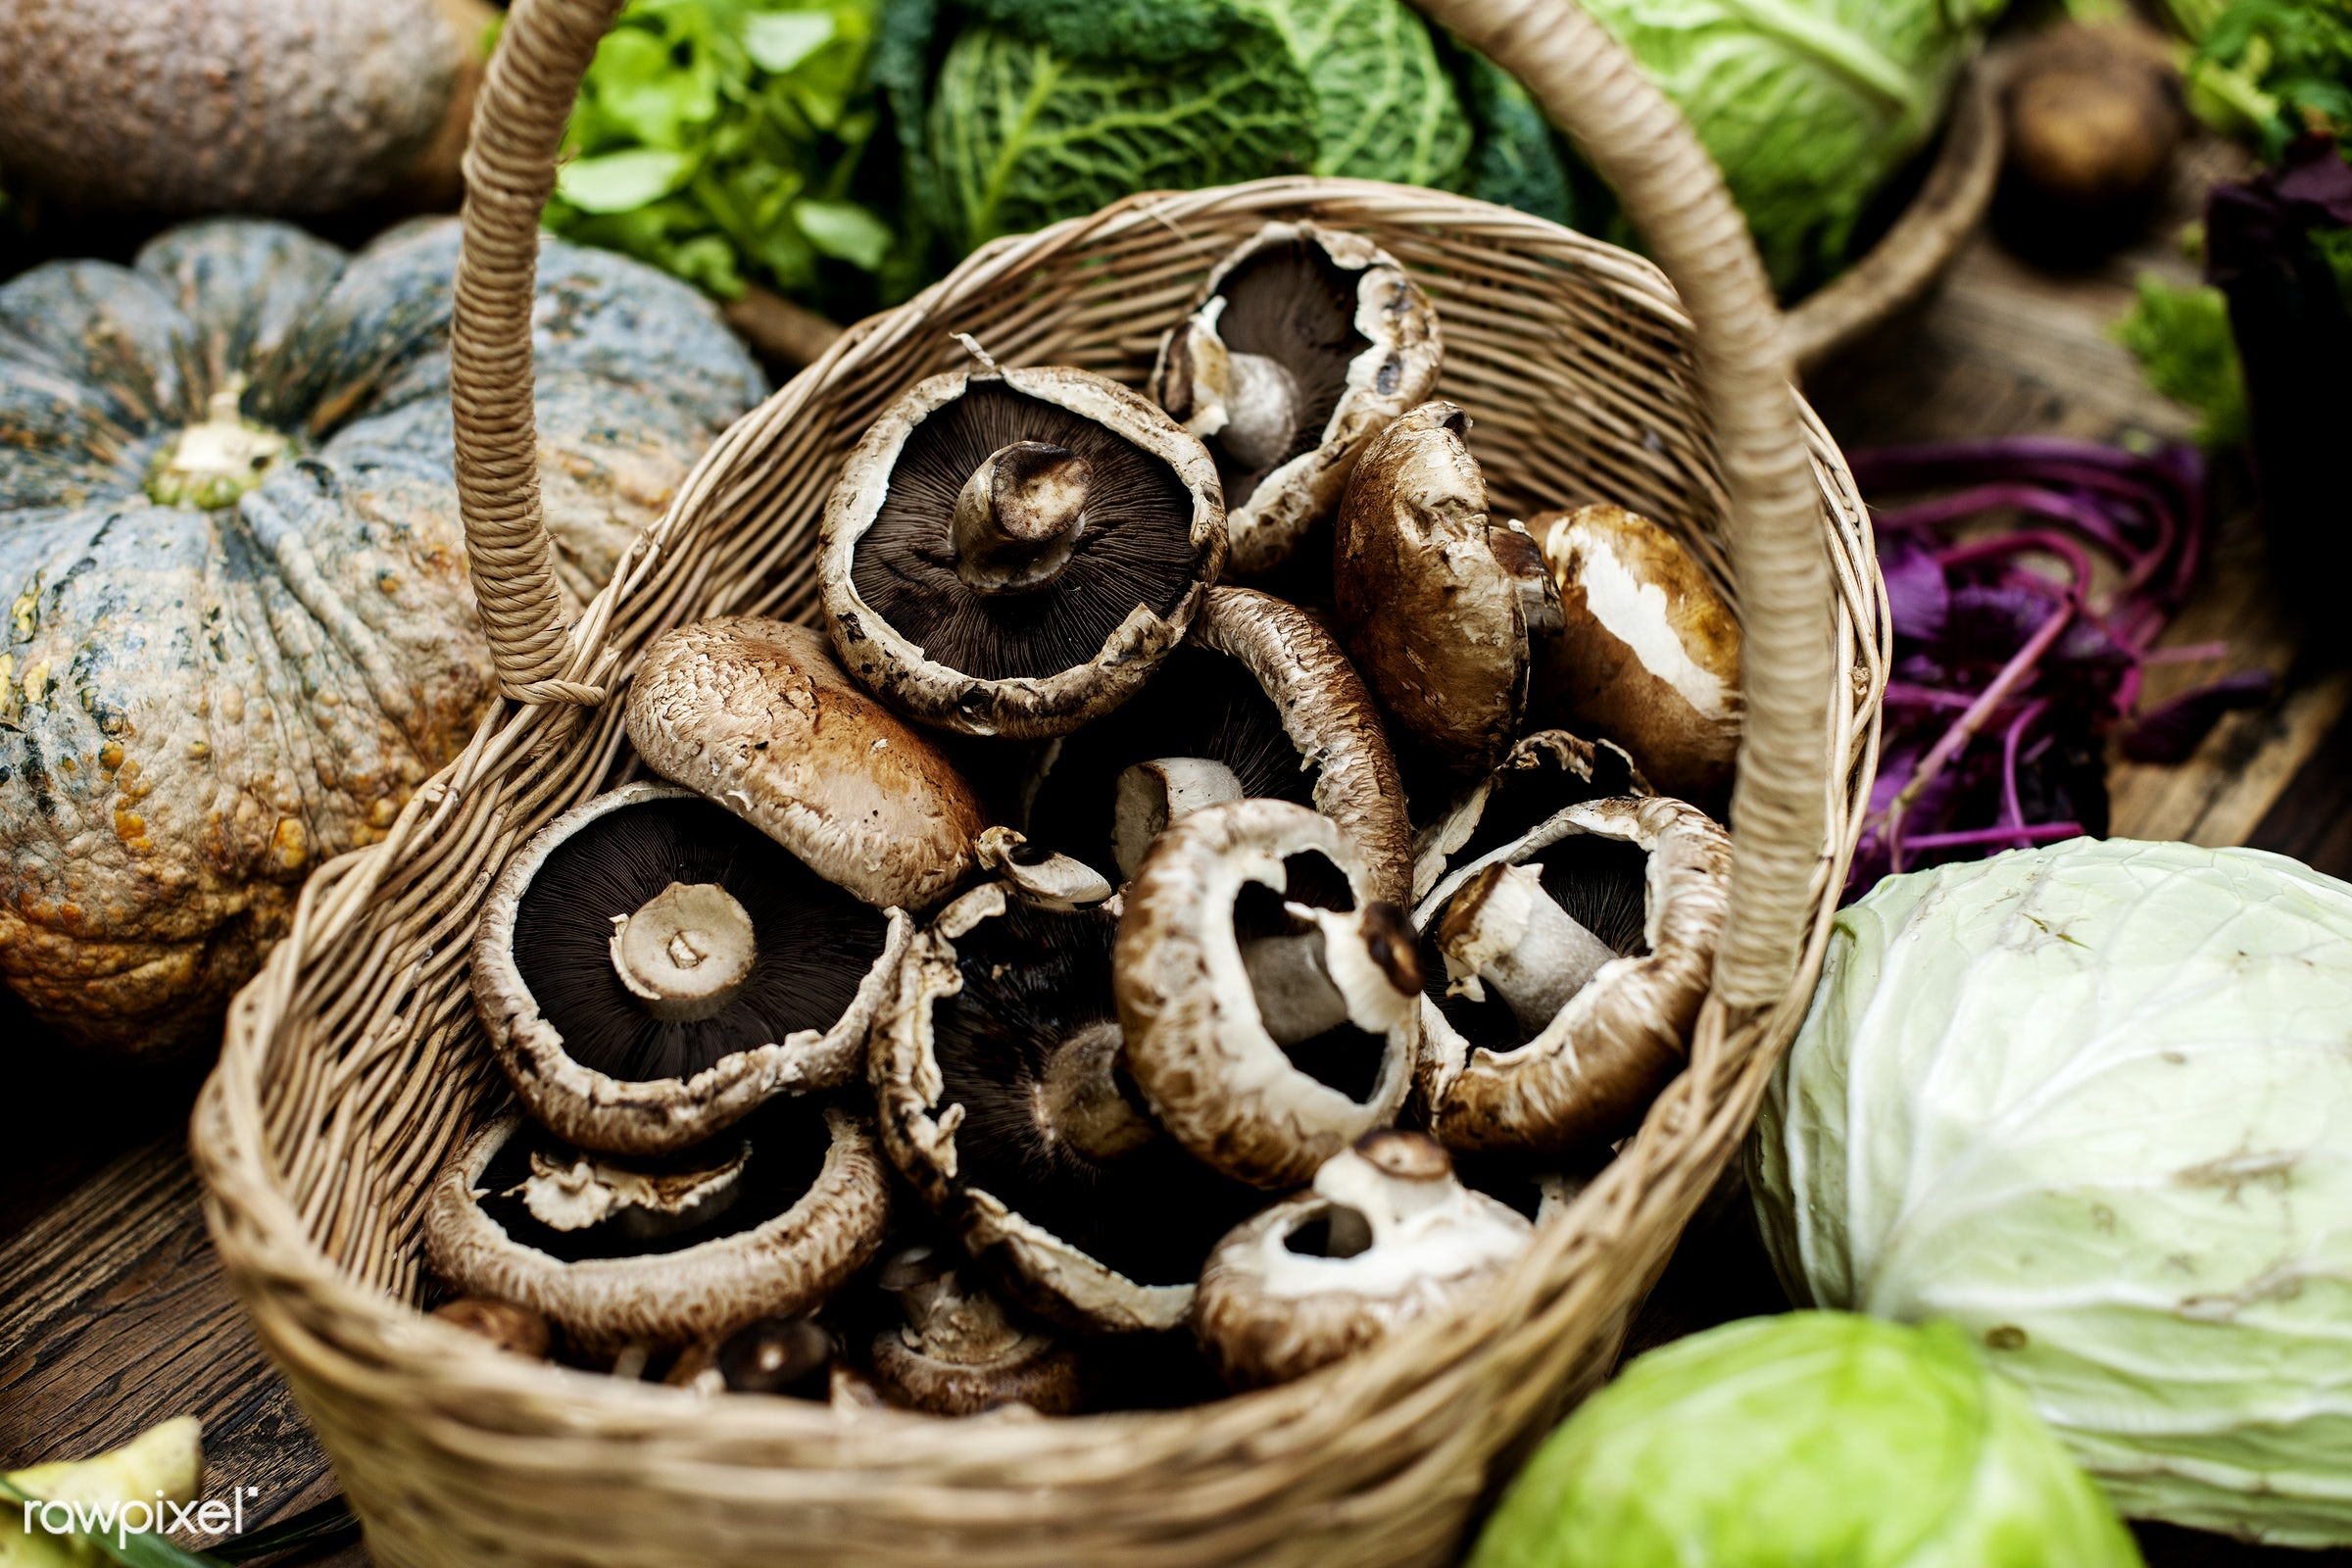 raw, plant, mushroom, nobody, ingredients, farm, real, nature, fresh, wooden basket, products, closeup, agriculture, organic...